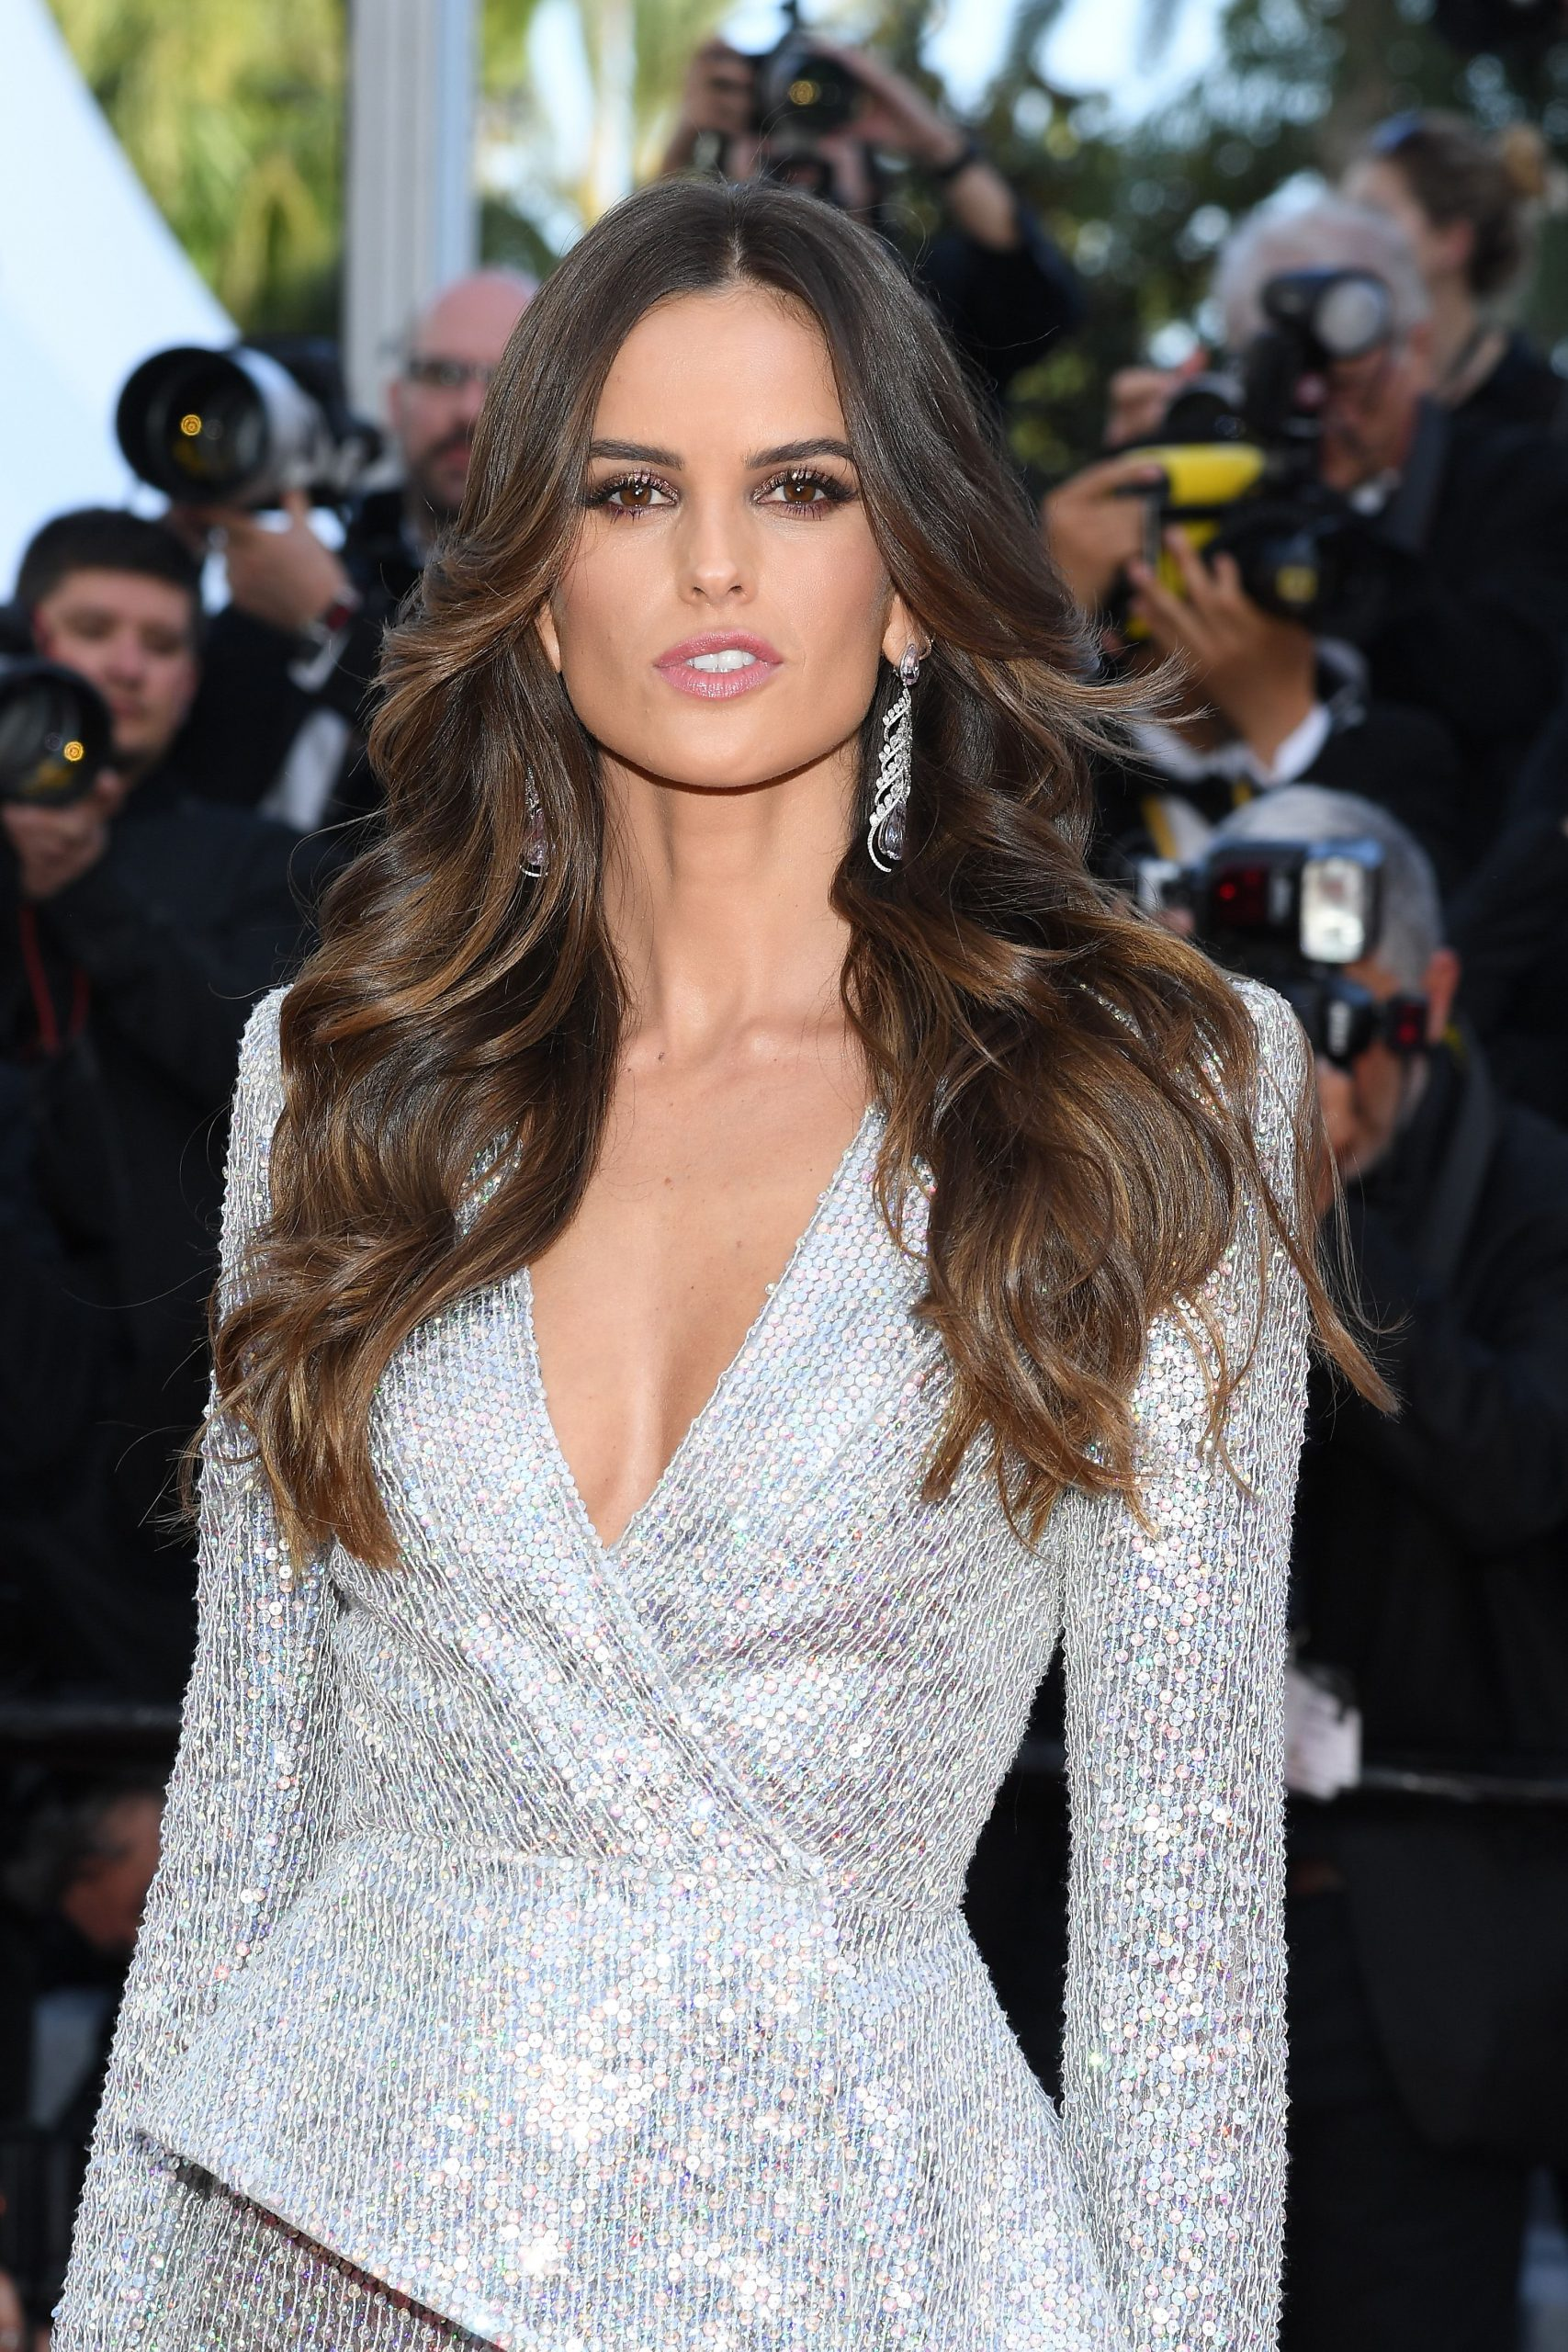 Long Hairstyle Model Elegant 70 Long Hairstyles to Try In 2021 Long Haircut Ideas